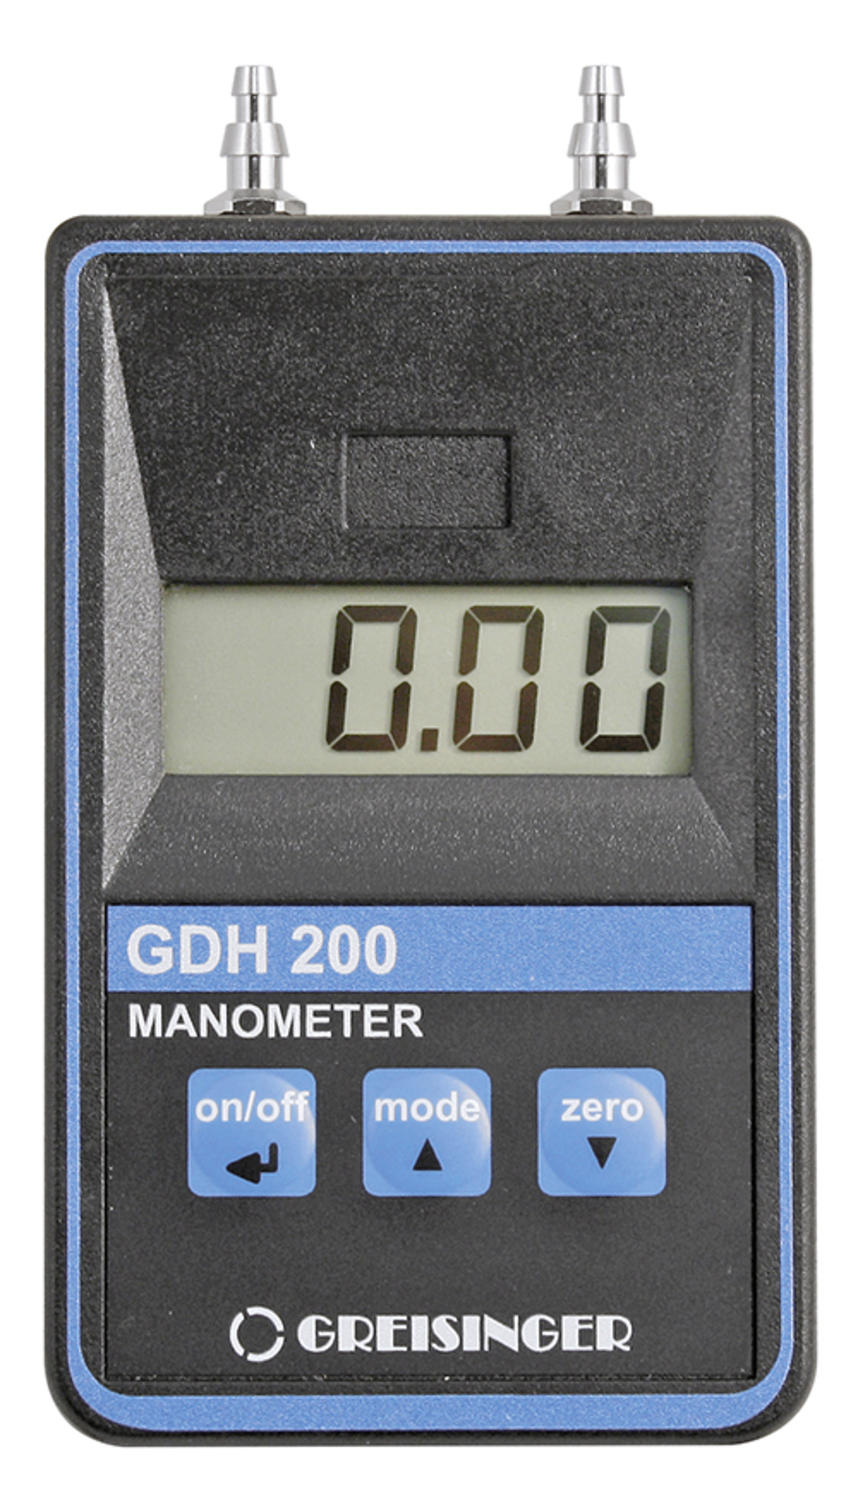 Manometer for Over/Under Pressure or Pressure Difference